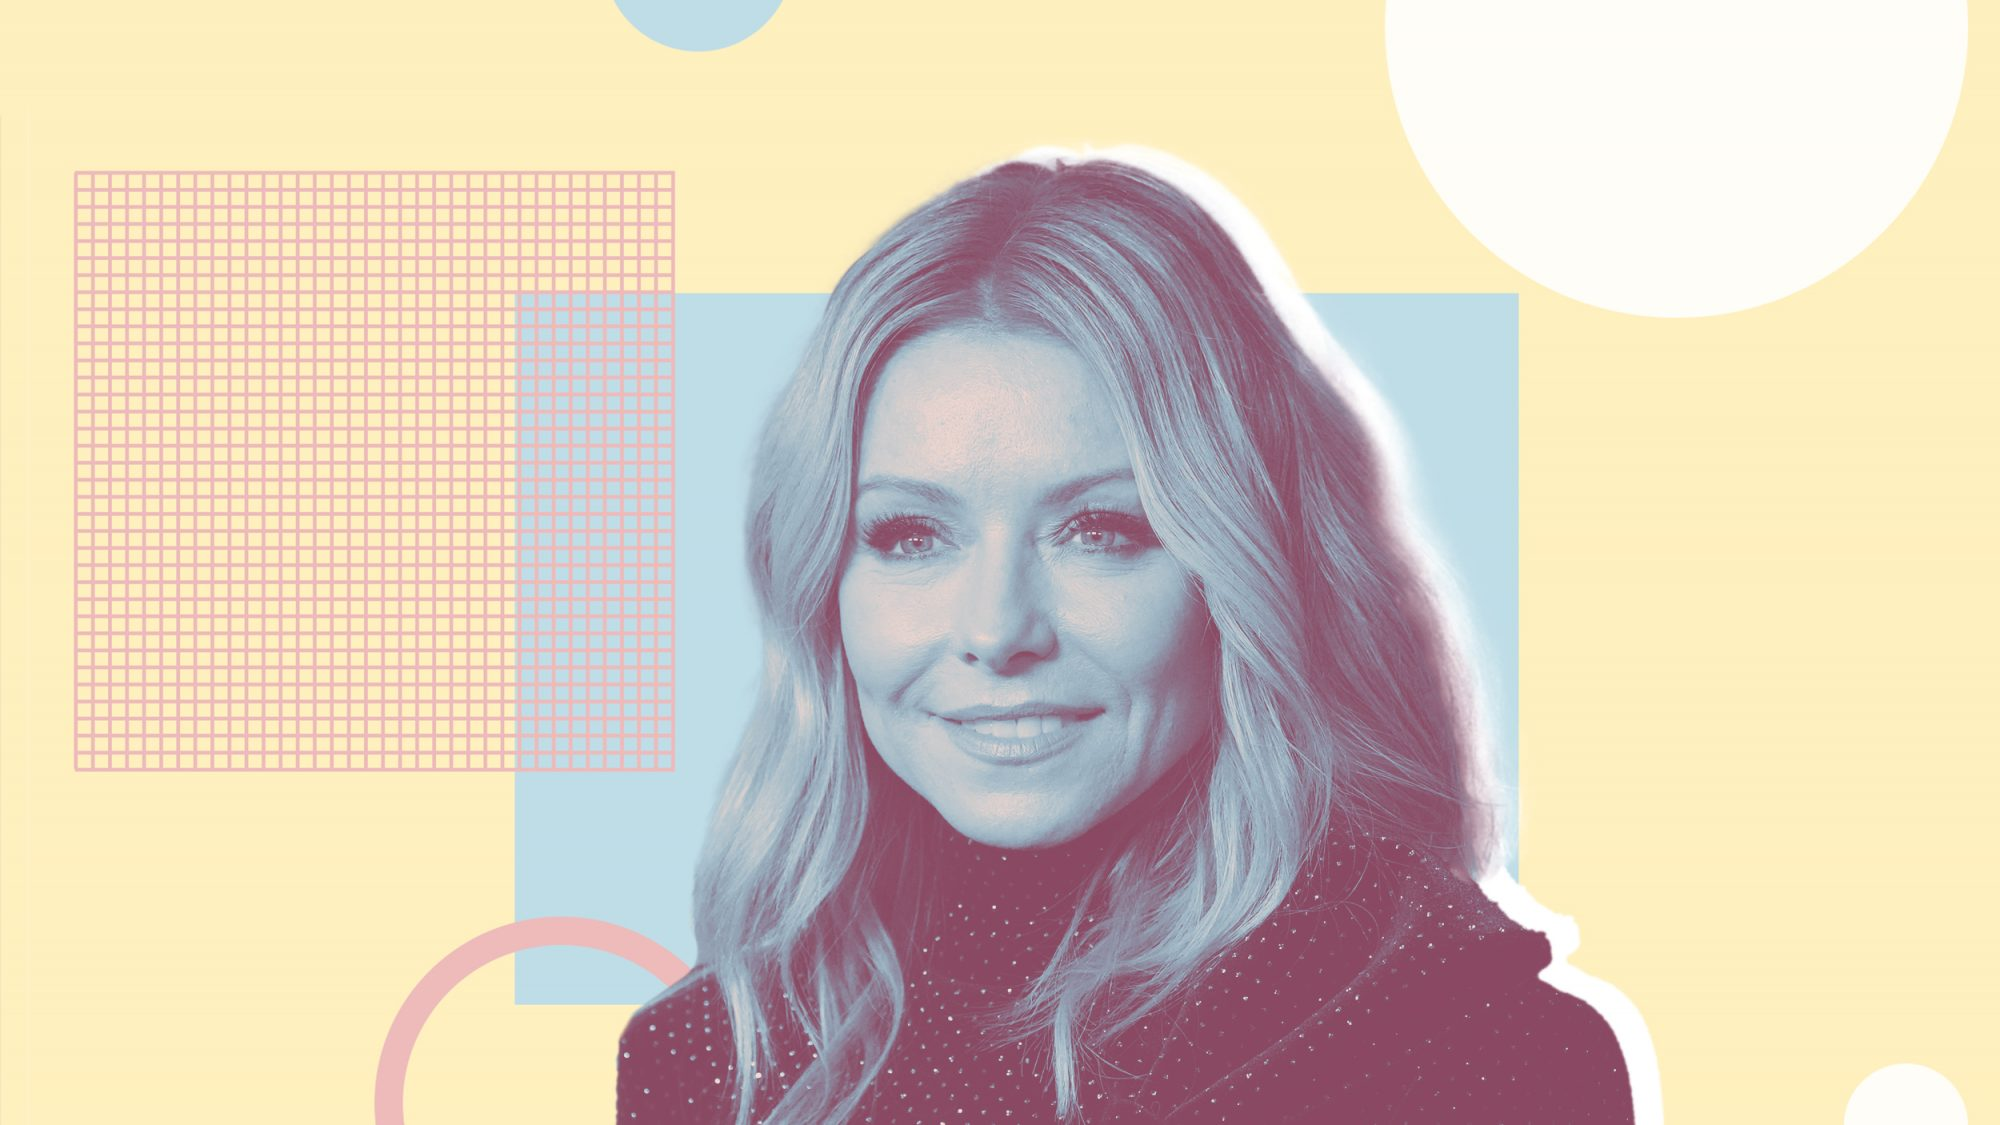 NEW YORK, NEW YORK - DECEMBER 08: Kelly Ripa attends the 13th Annual CNN Heroes at the American Museum of Natural History on December 08, 2019 in New York City. (Photo by J. Countess/Getty Images)